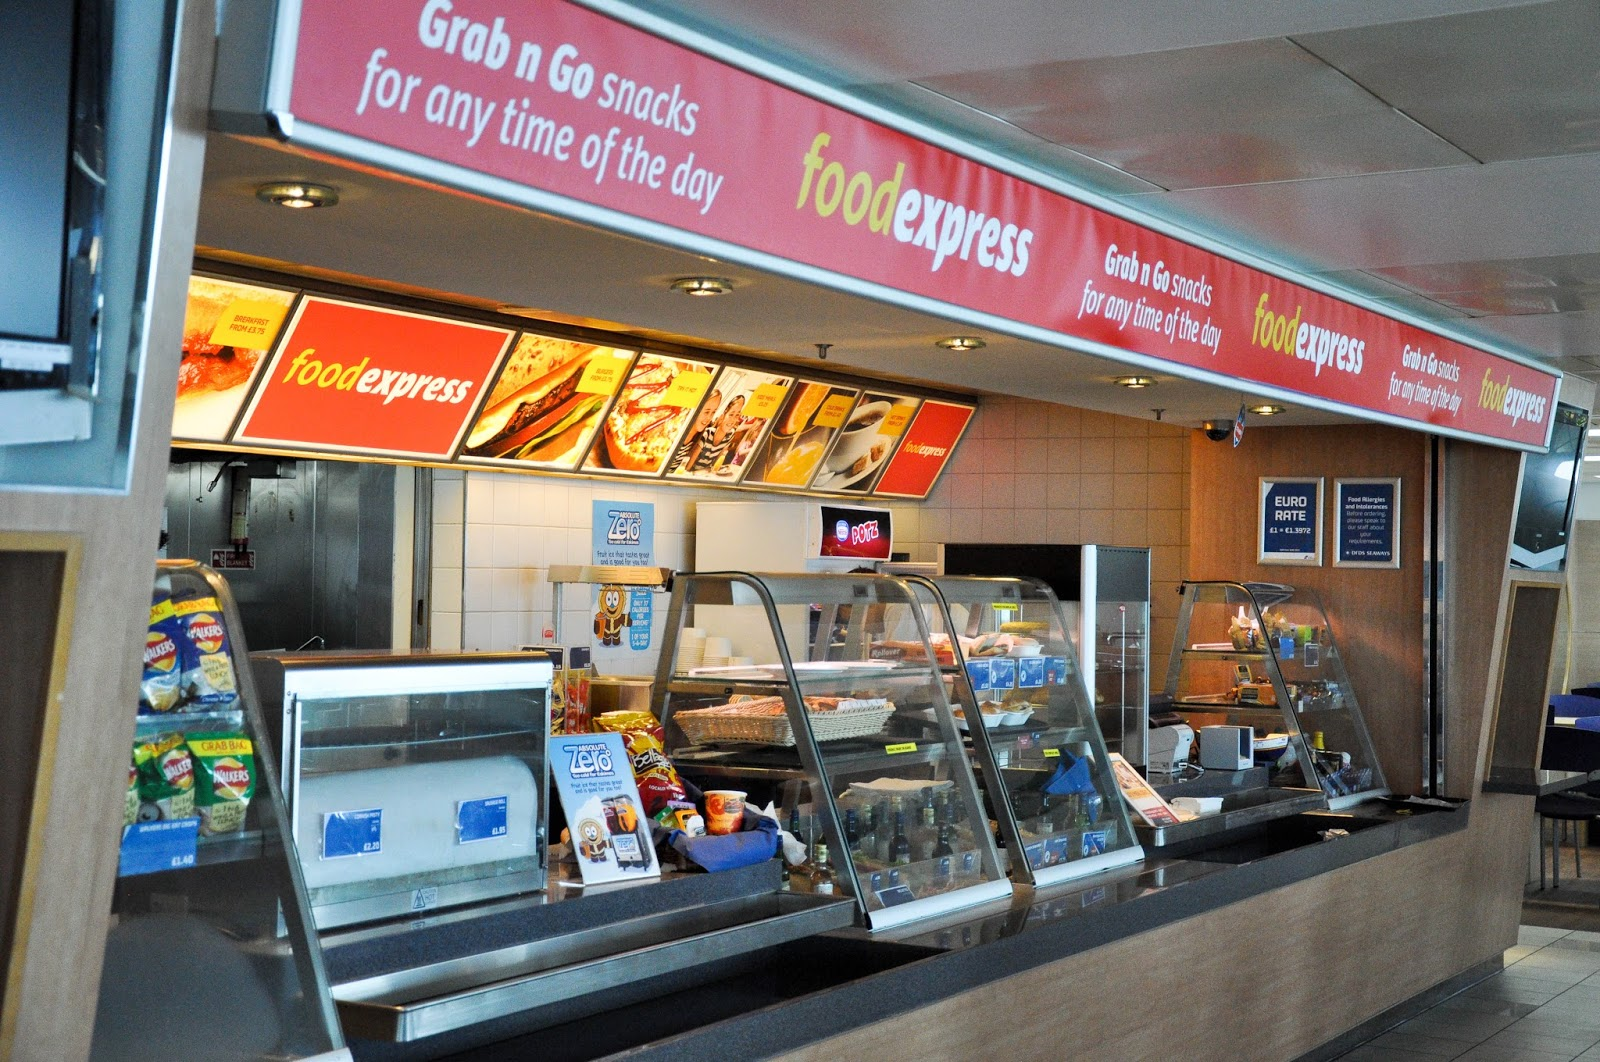 The FoodExpress counter on the DFDS Saeways Ferry, The English Channel, on the way back from France